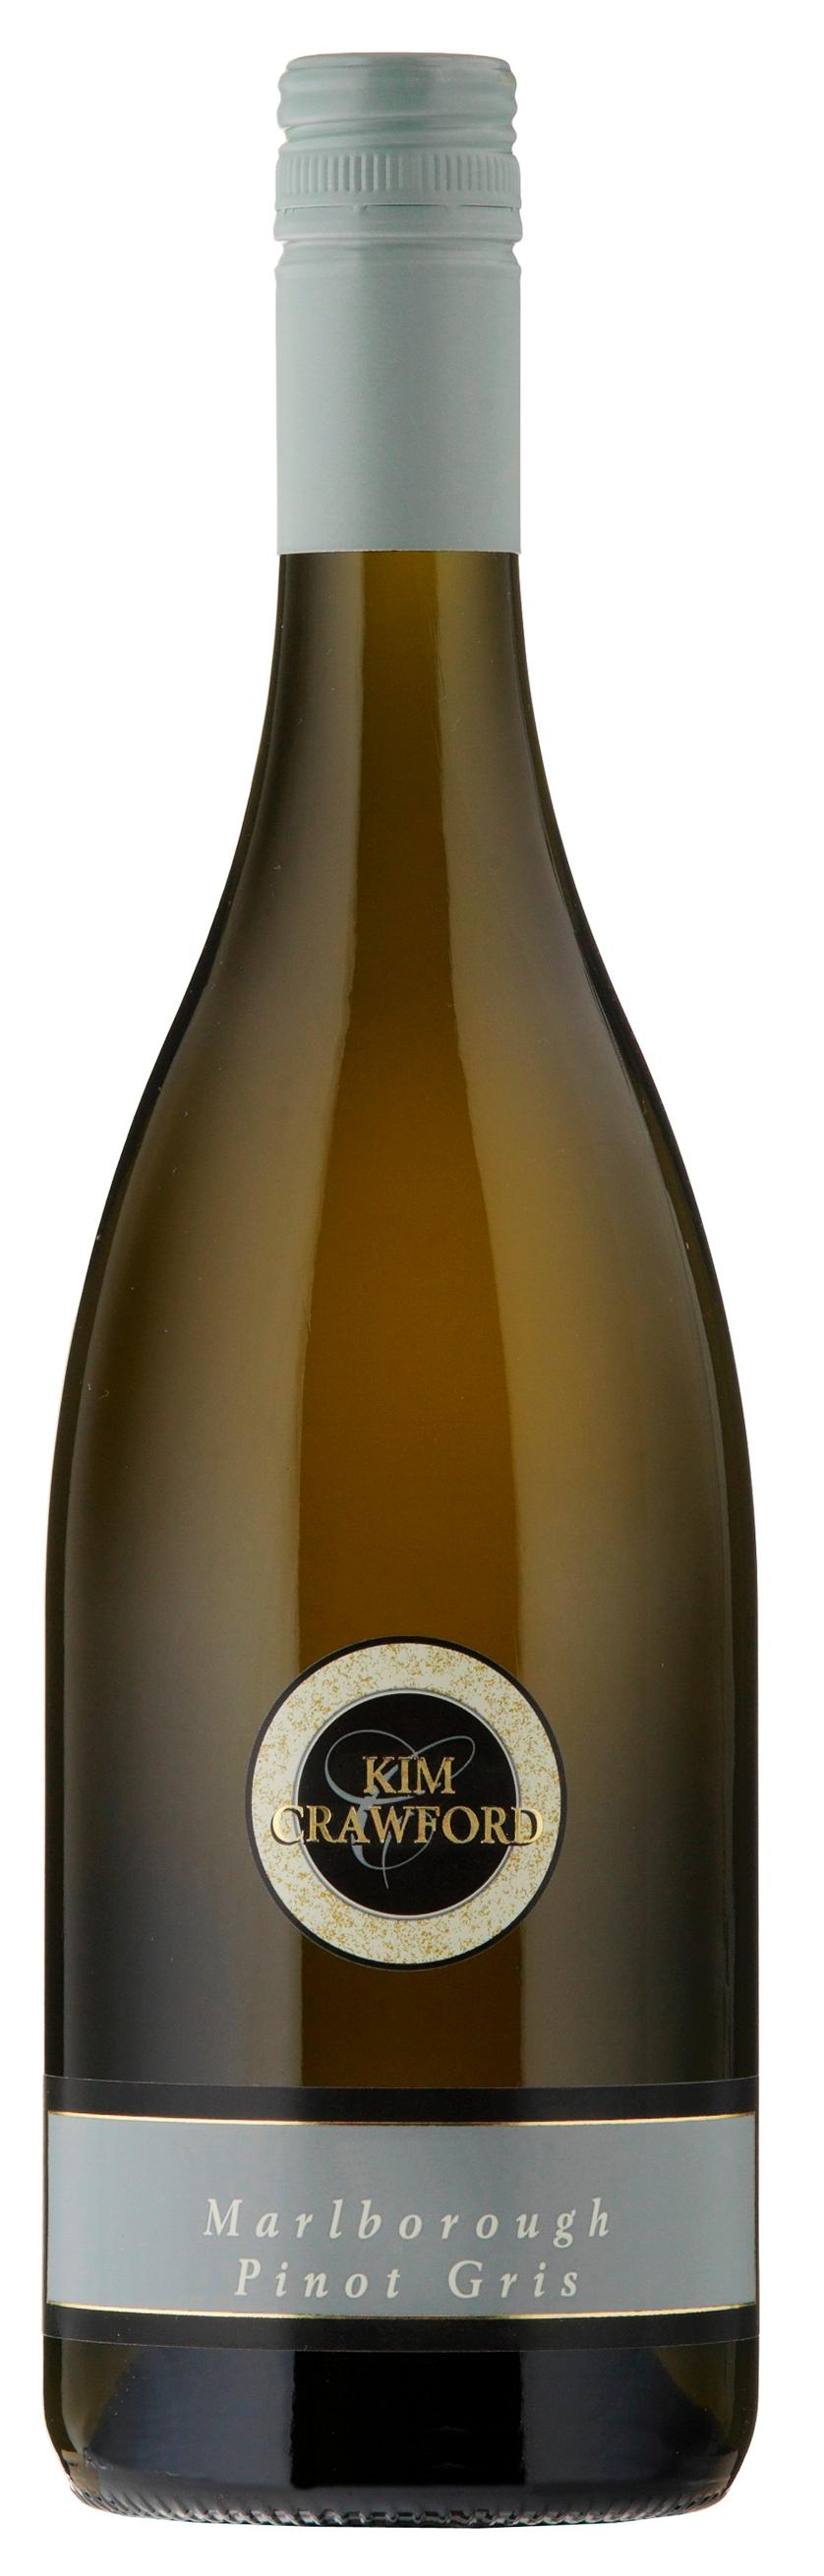 Kim Crawford - Pinot Gris Marlborough